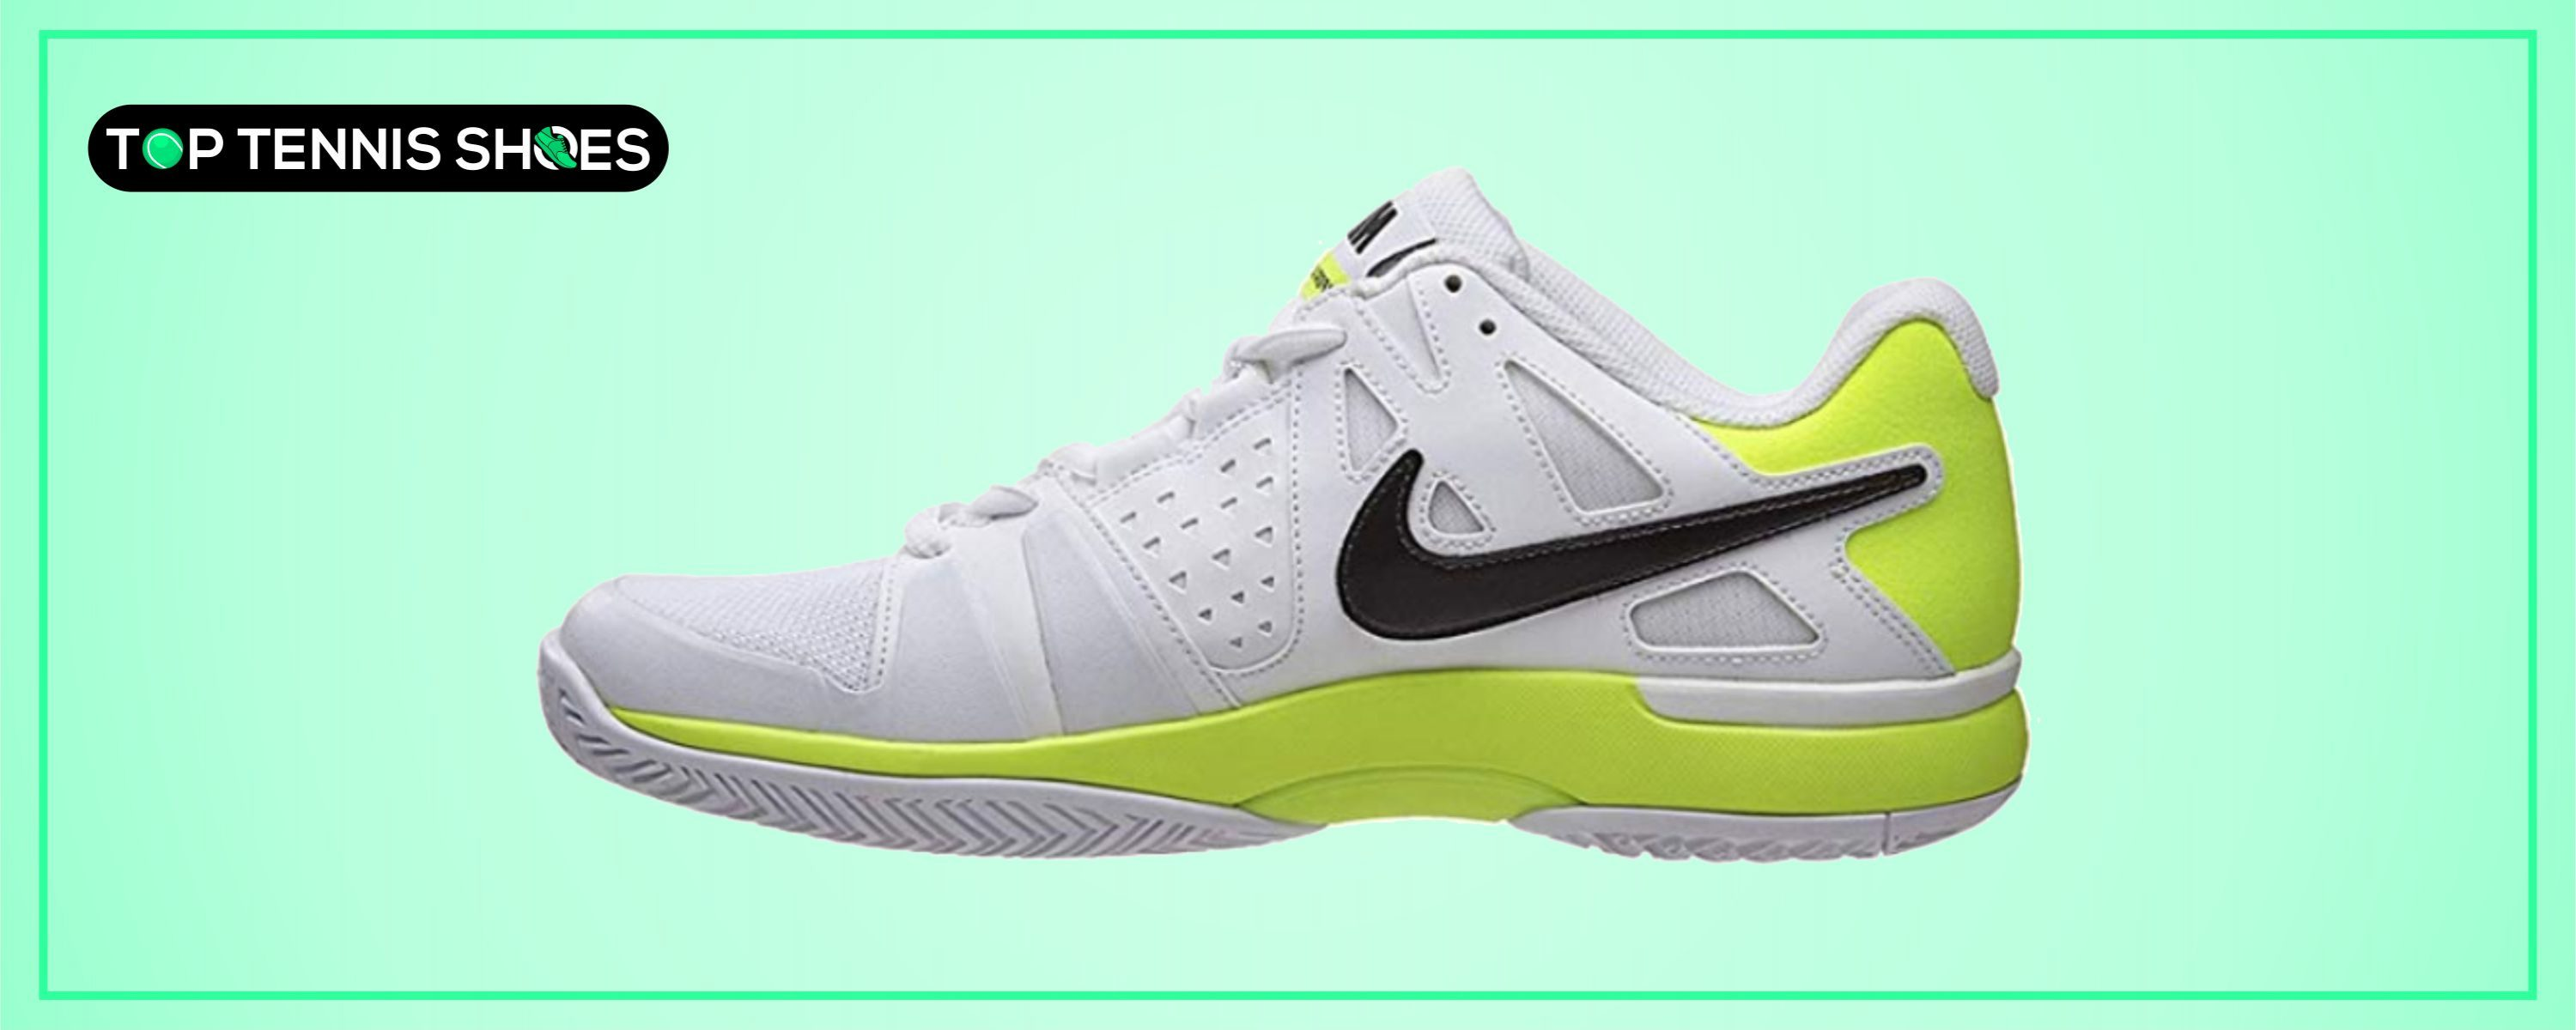 Perfect Tennis Shoes for Sliding